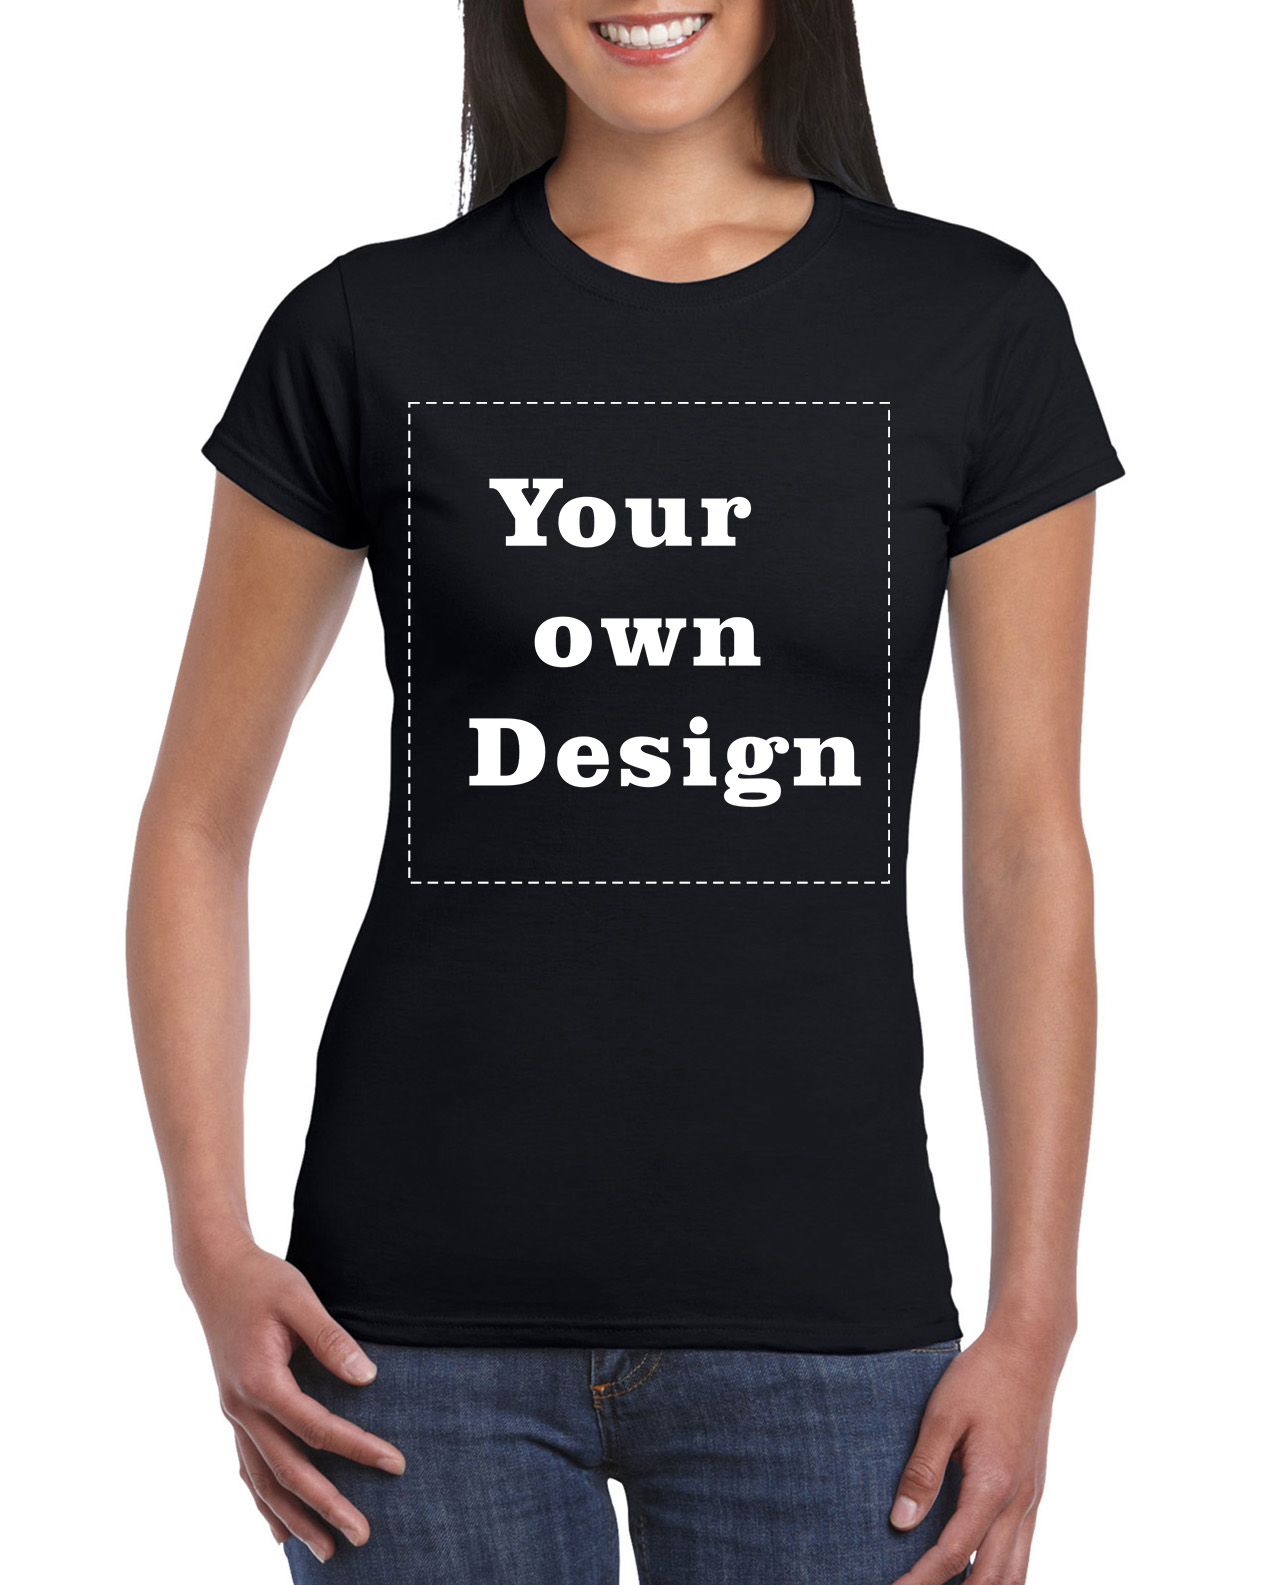 Design your own t-shirt female - 2016 Women Black Your Own Design T Shirt Novelty Tops Lady Custom Printed Short Sleeve Tees